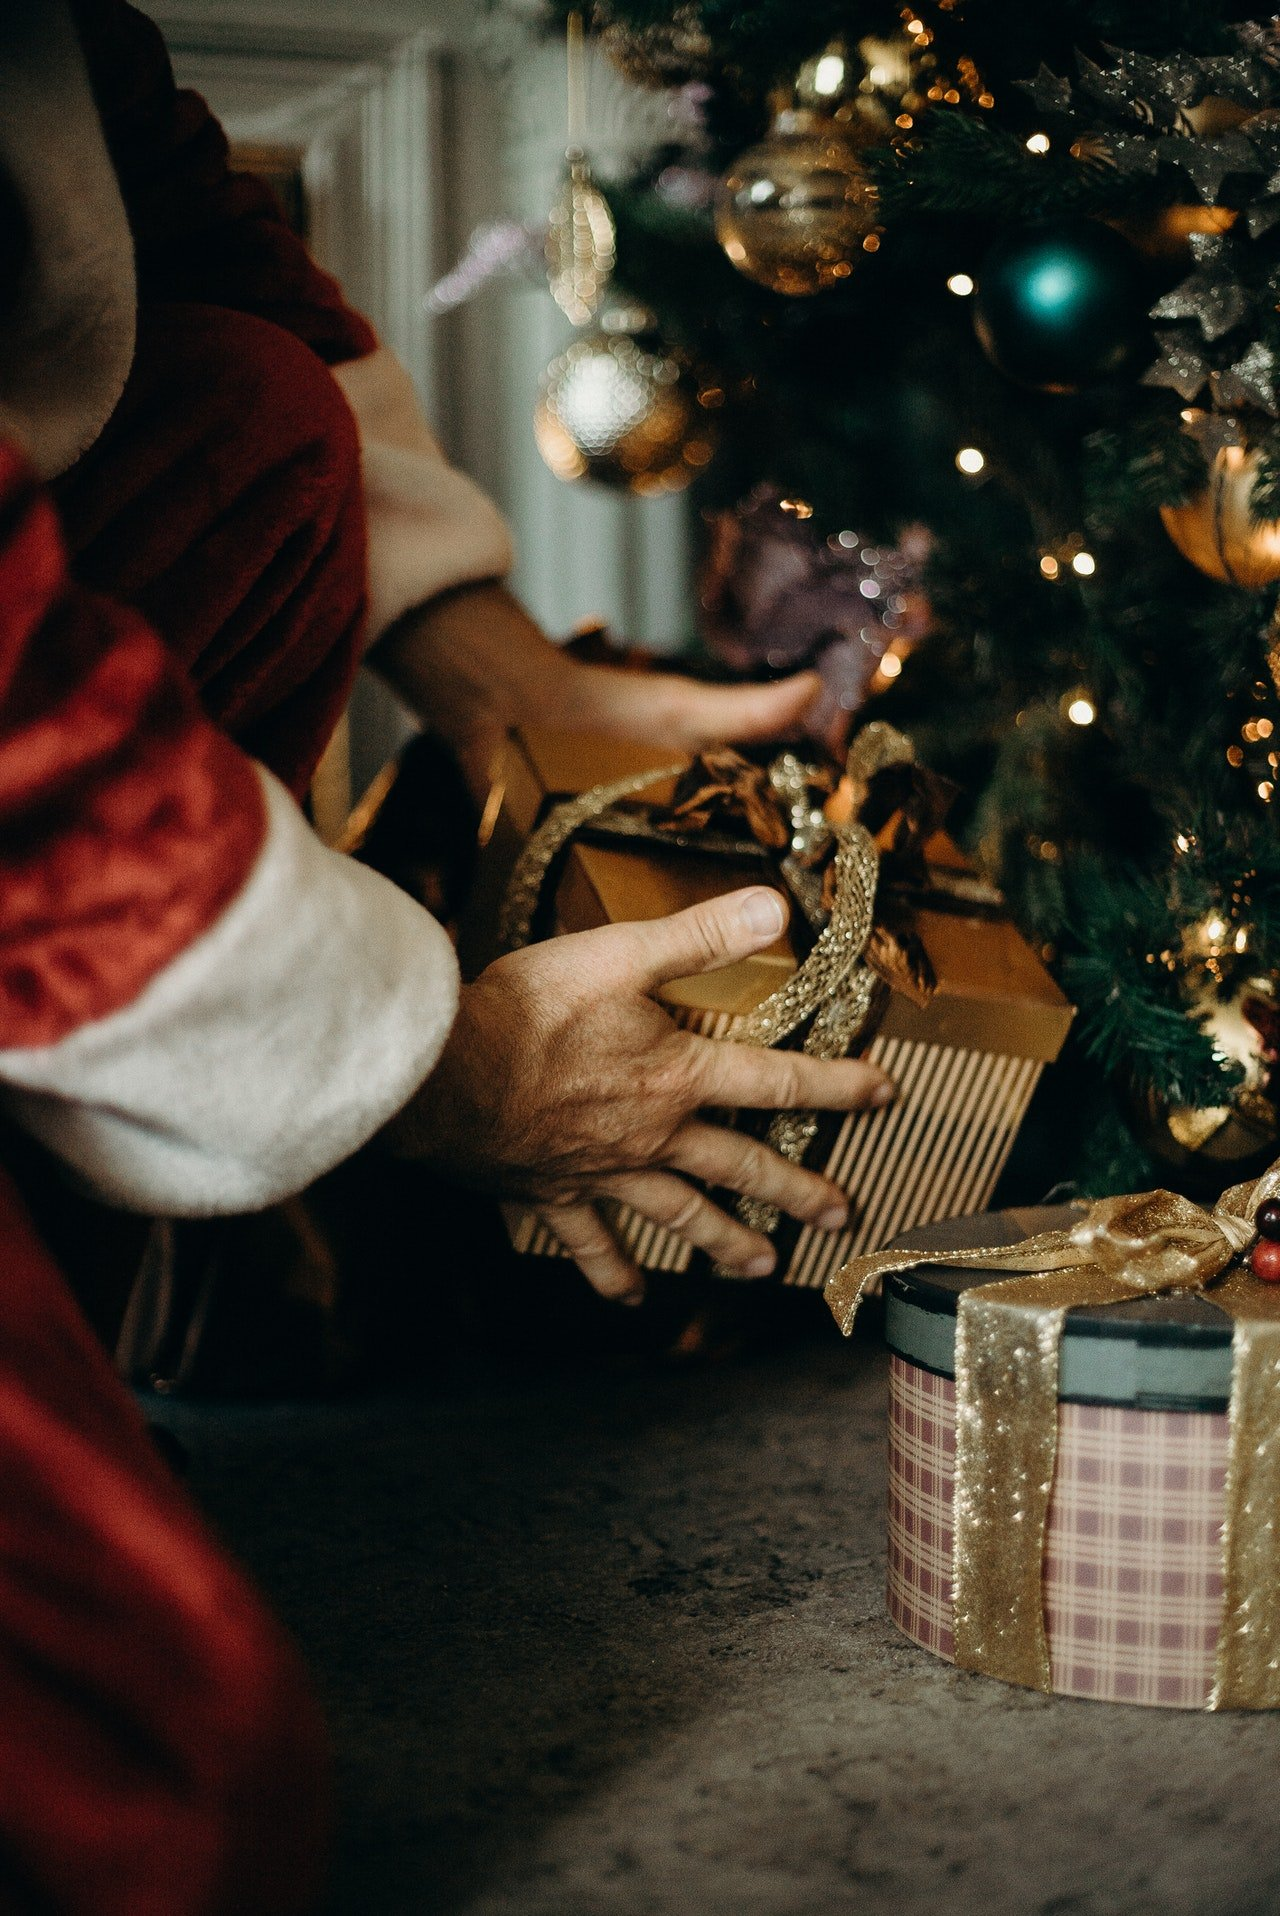 Photo of Santa Claus holding a gift box | Photo: Pexels